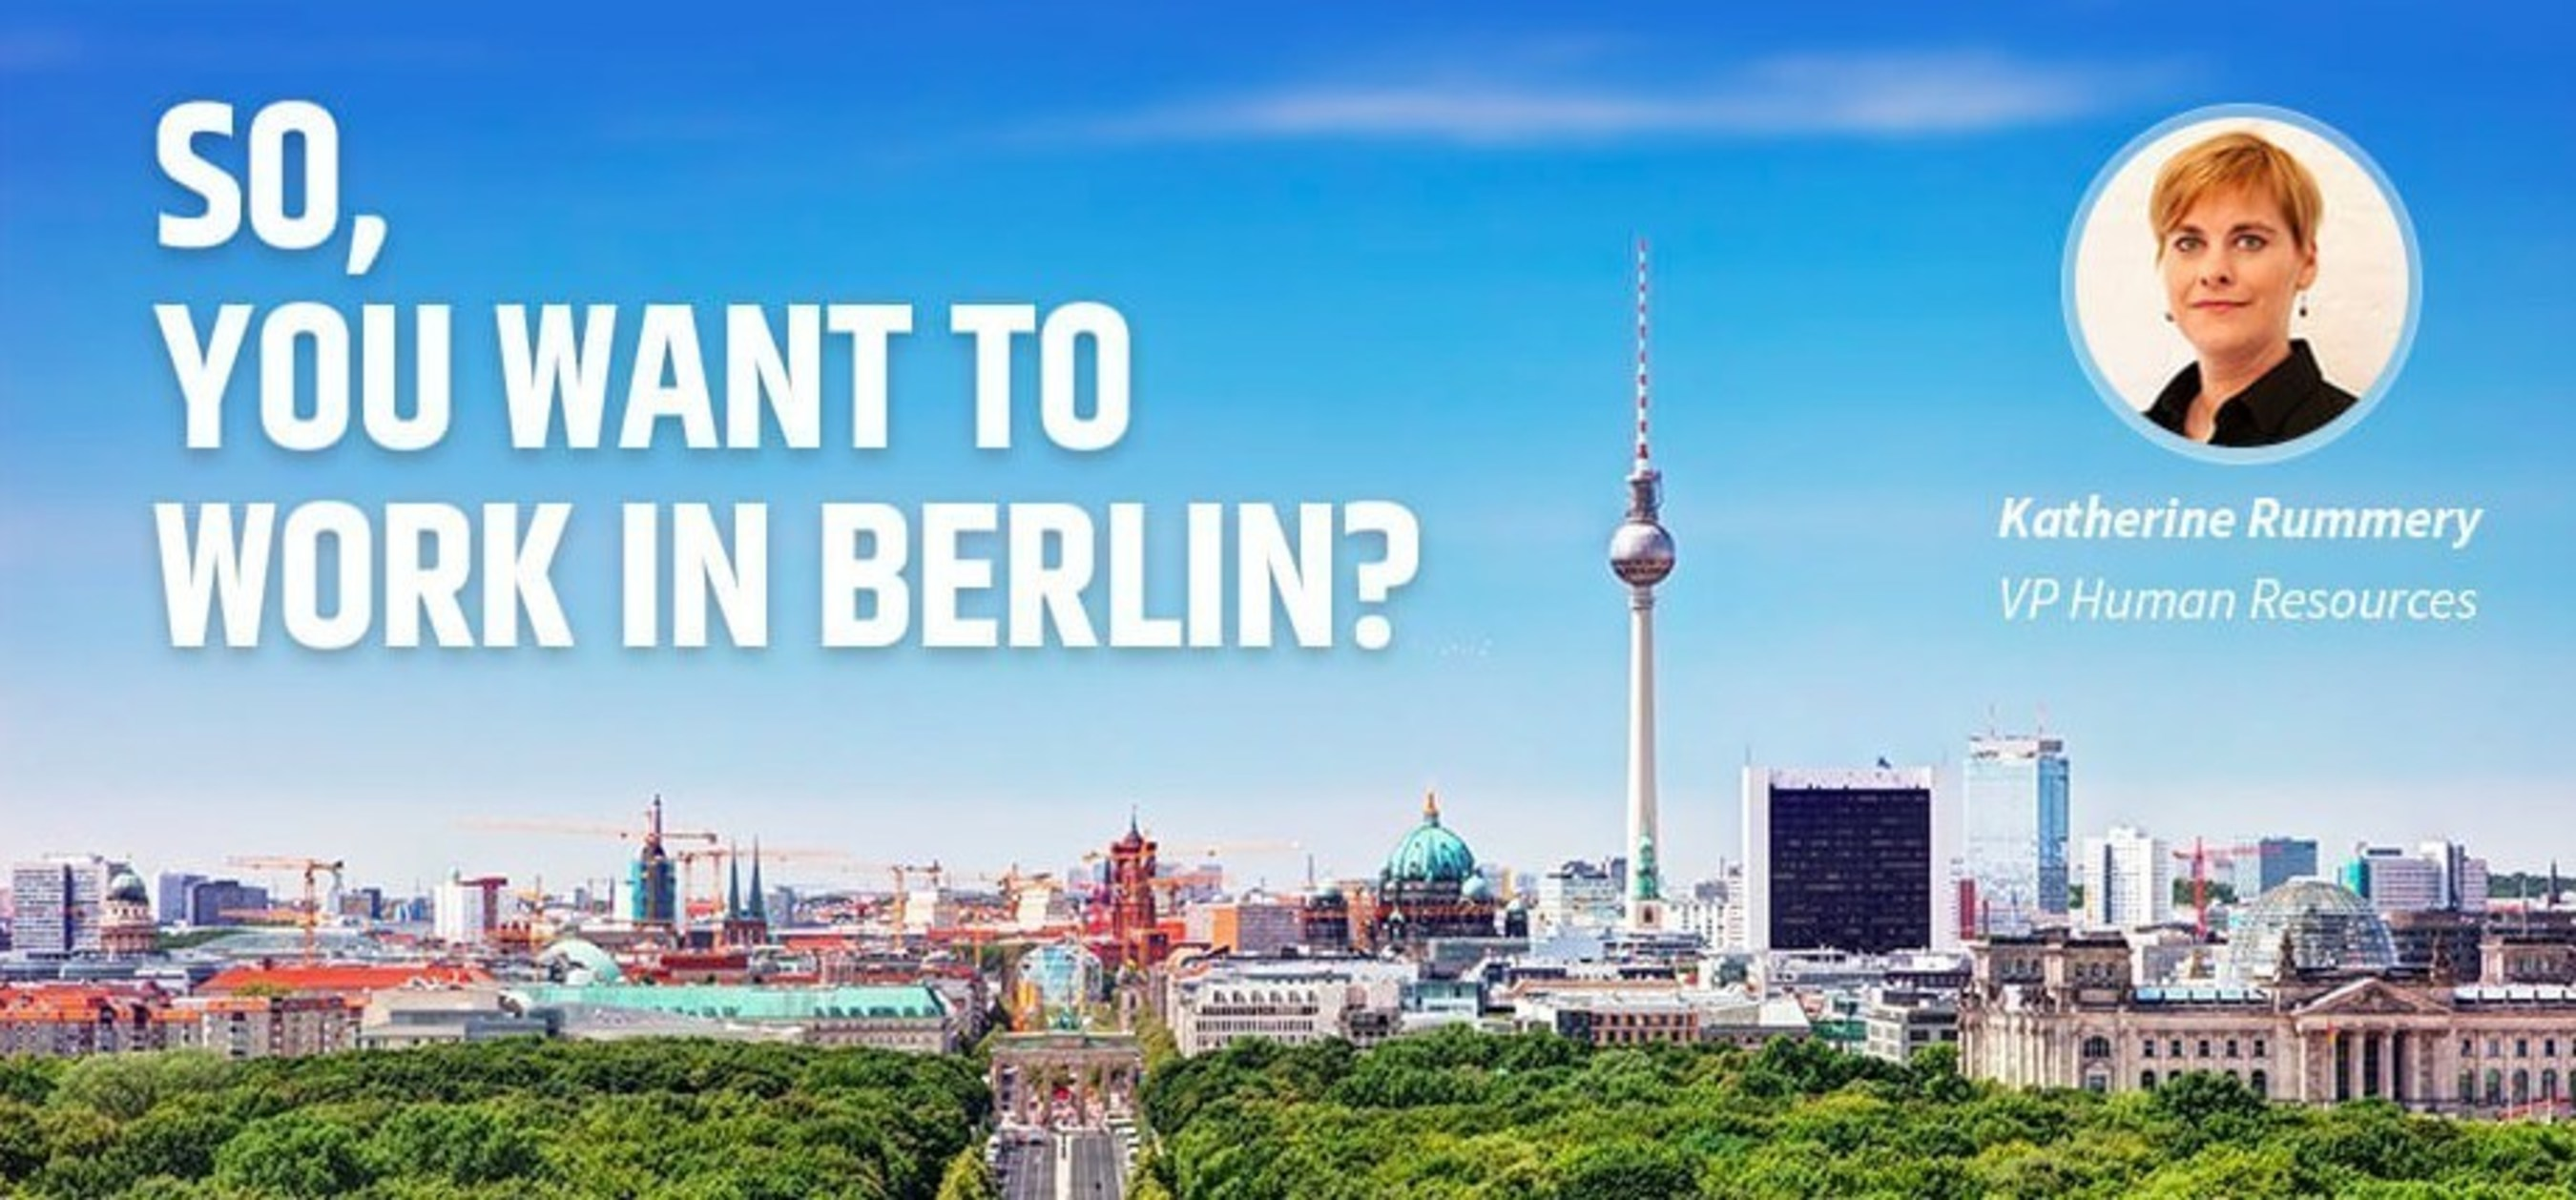 So, you want to work in Berlin?